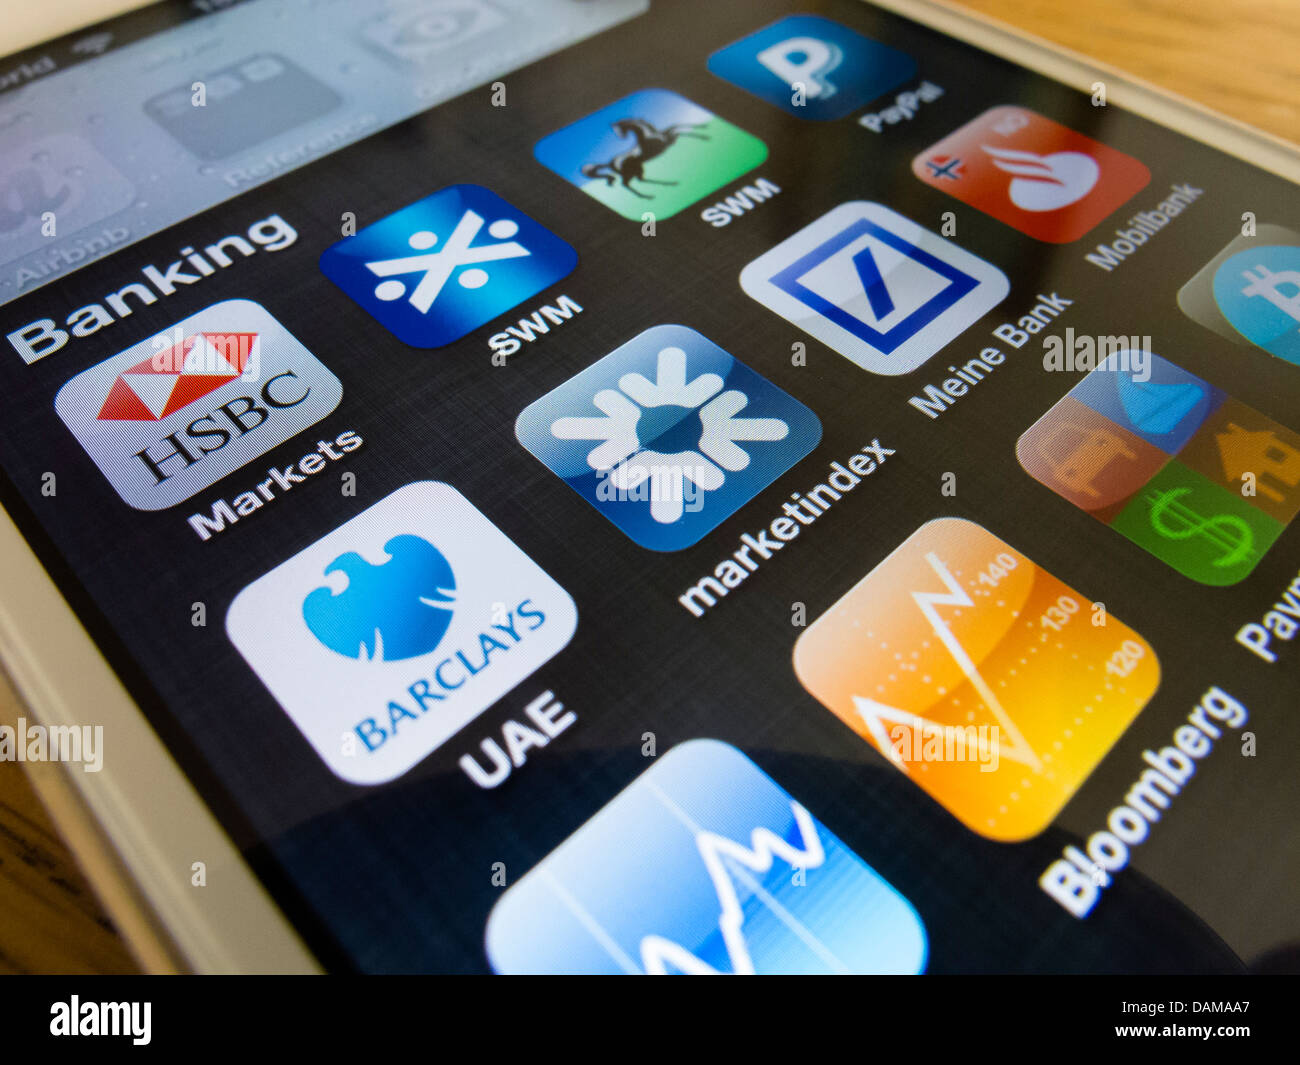 detail of iPhone 5 with many banking apps - Stock Image